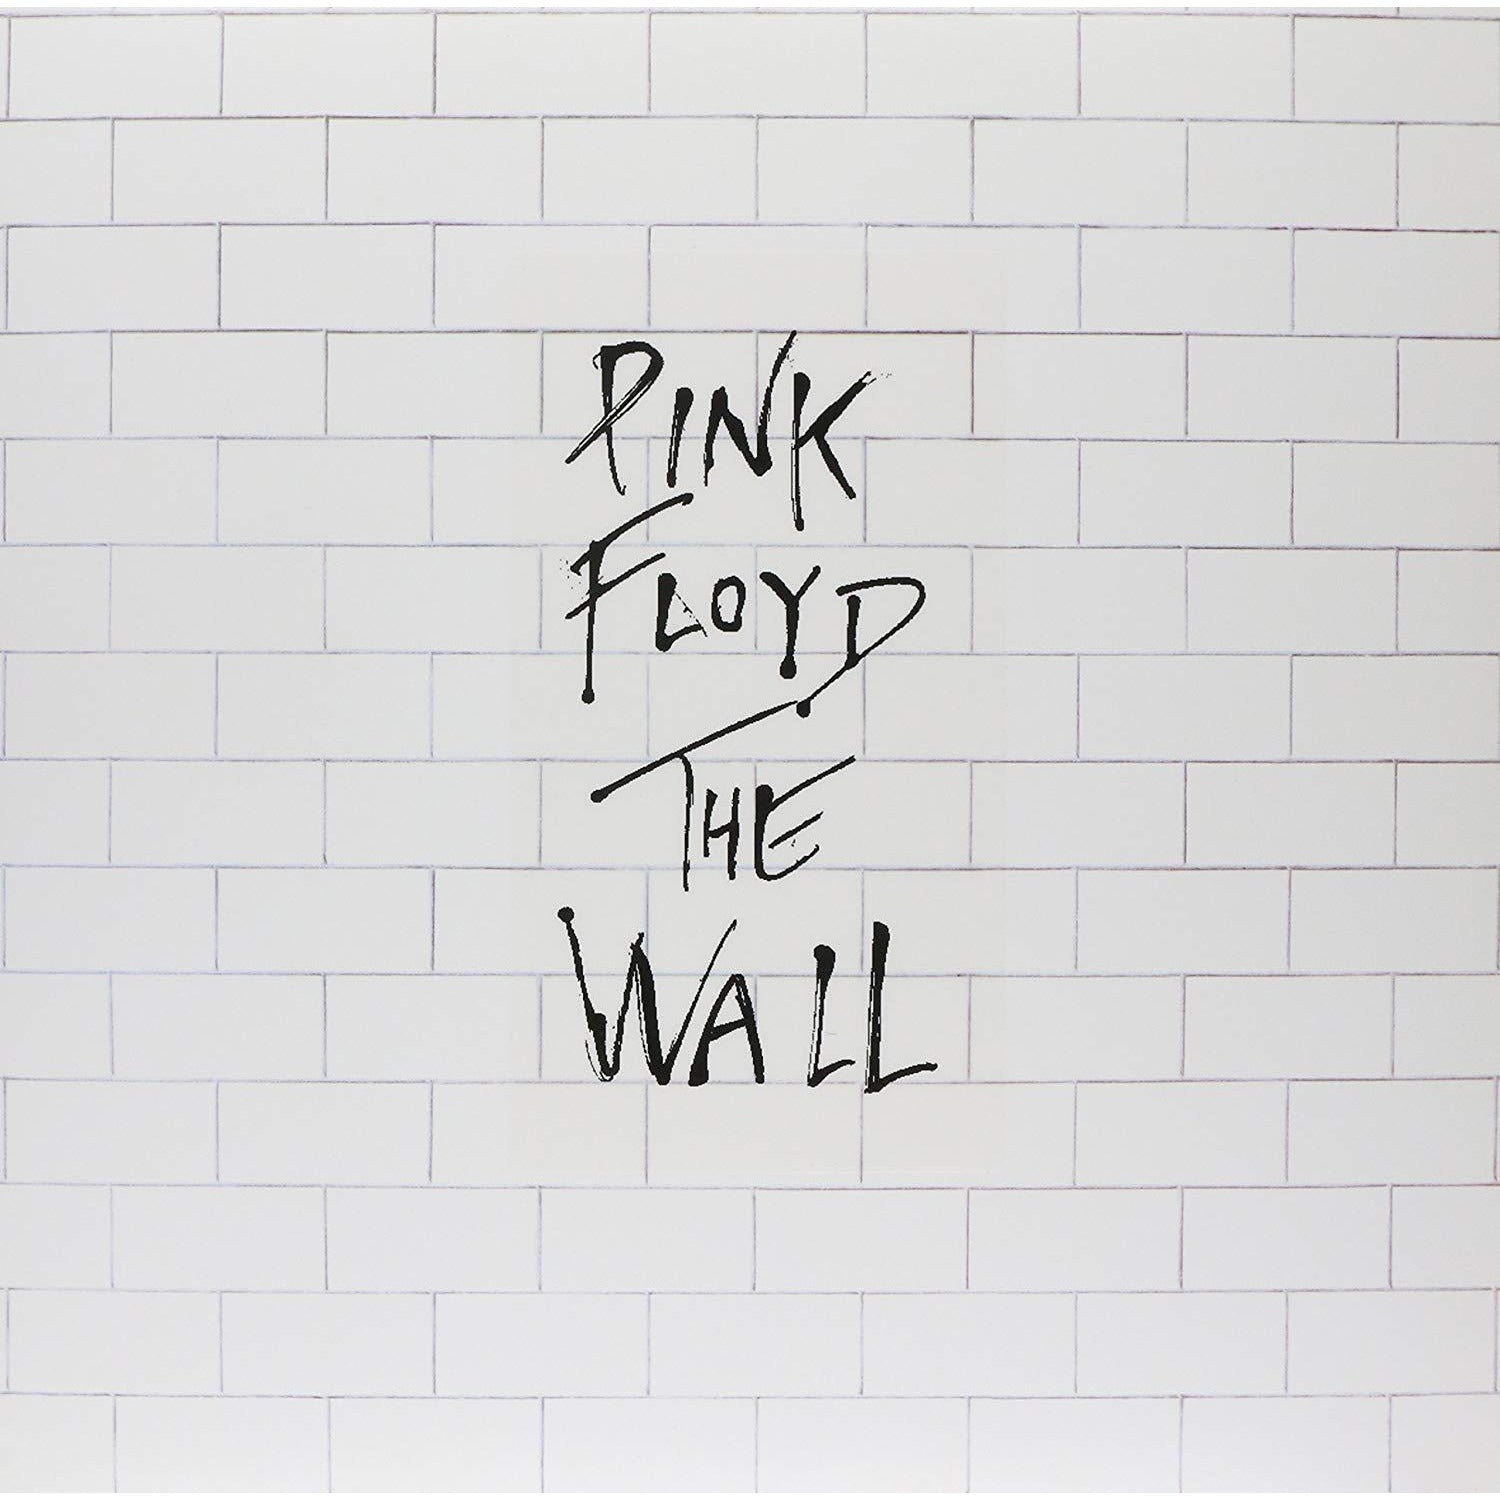 THE WALL (VINYL) - Vinyl Sound